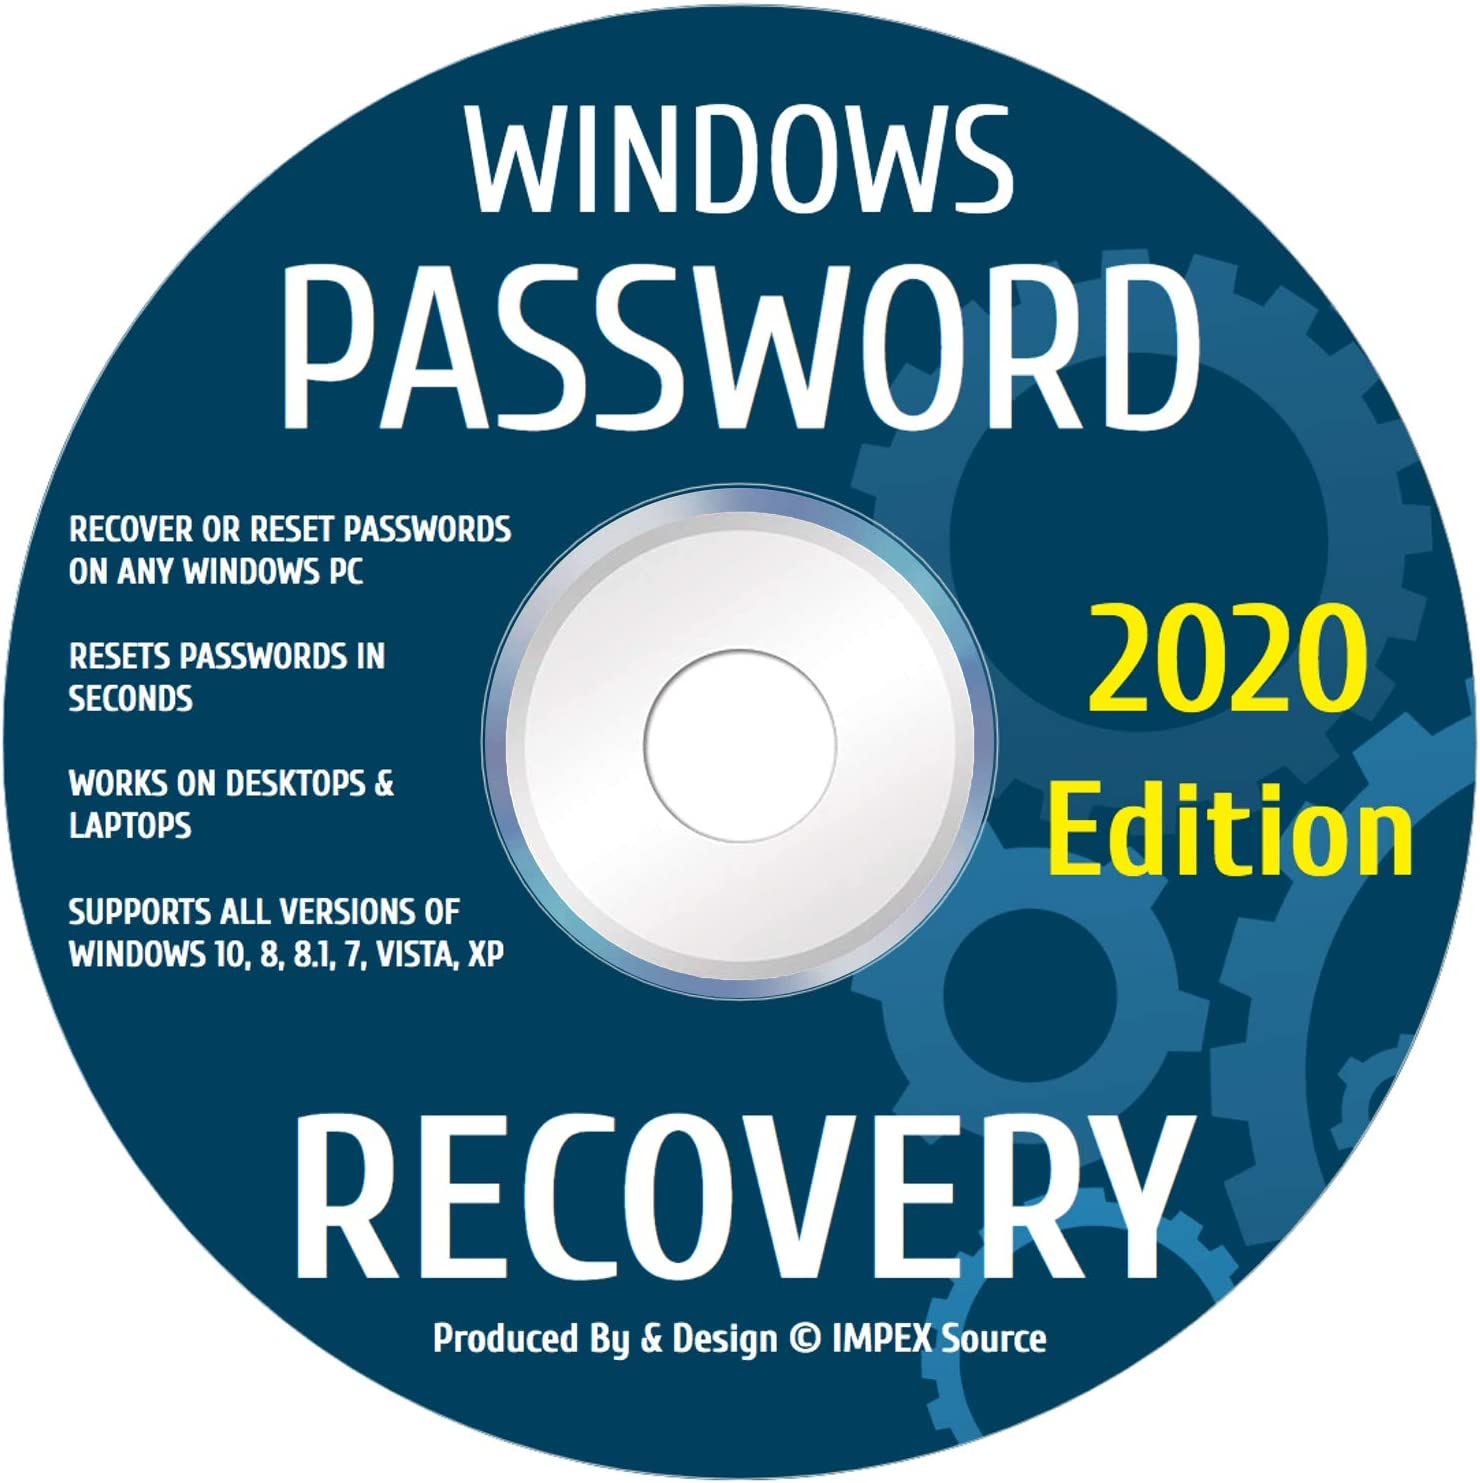 Windows Password Reset Recovery Disk Windows 10, 8.1, 7, Vista, XP Rated #1 Best Unlocker Remove Software CD DVD For All Windows PC Computers Laptops & Desktops By IMPEX Source